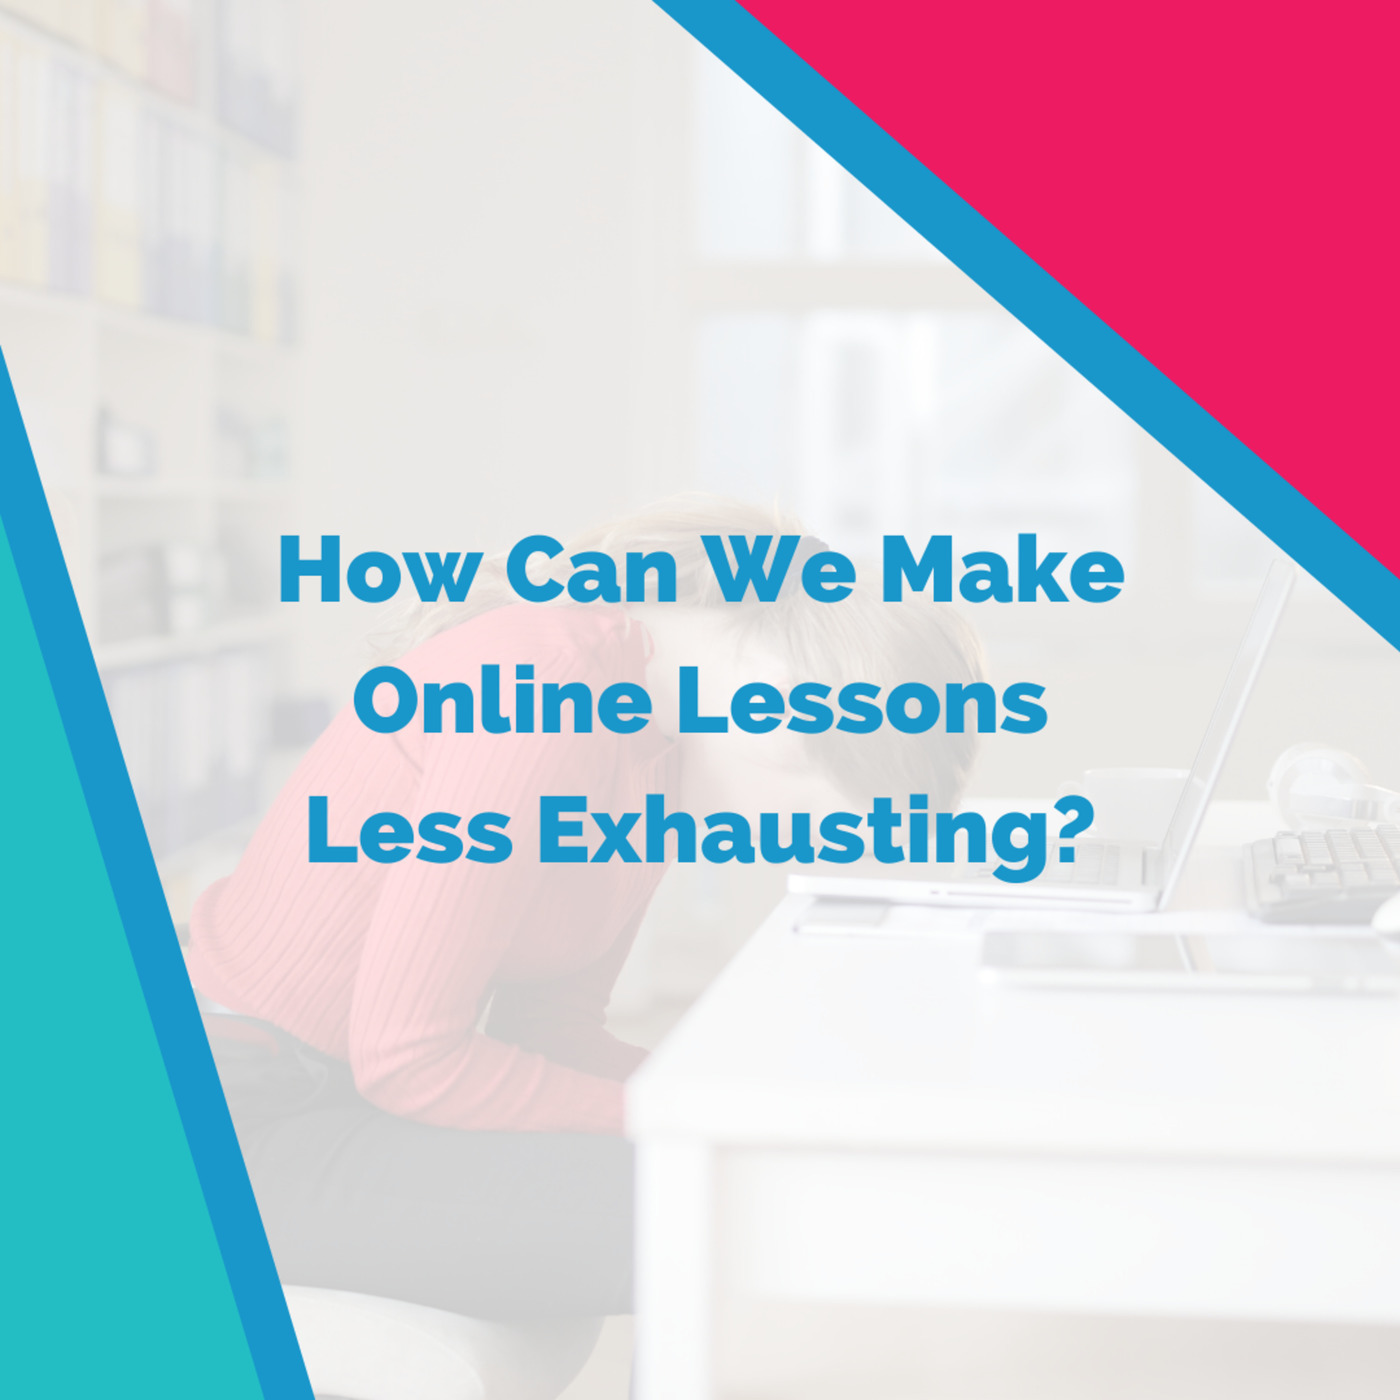 The Fluent Show: How Can We Make Online Lessons Less Exhausting?